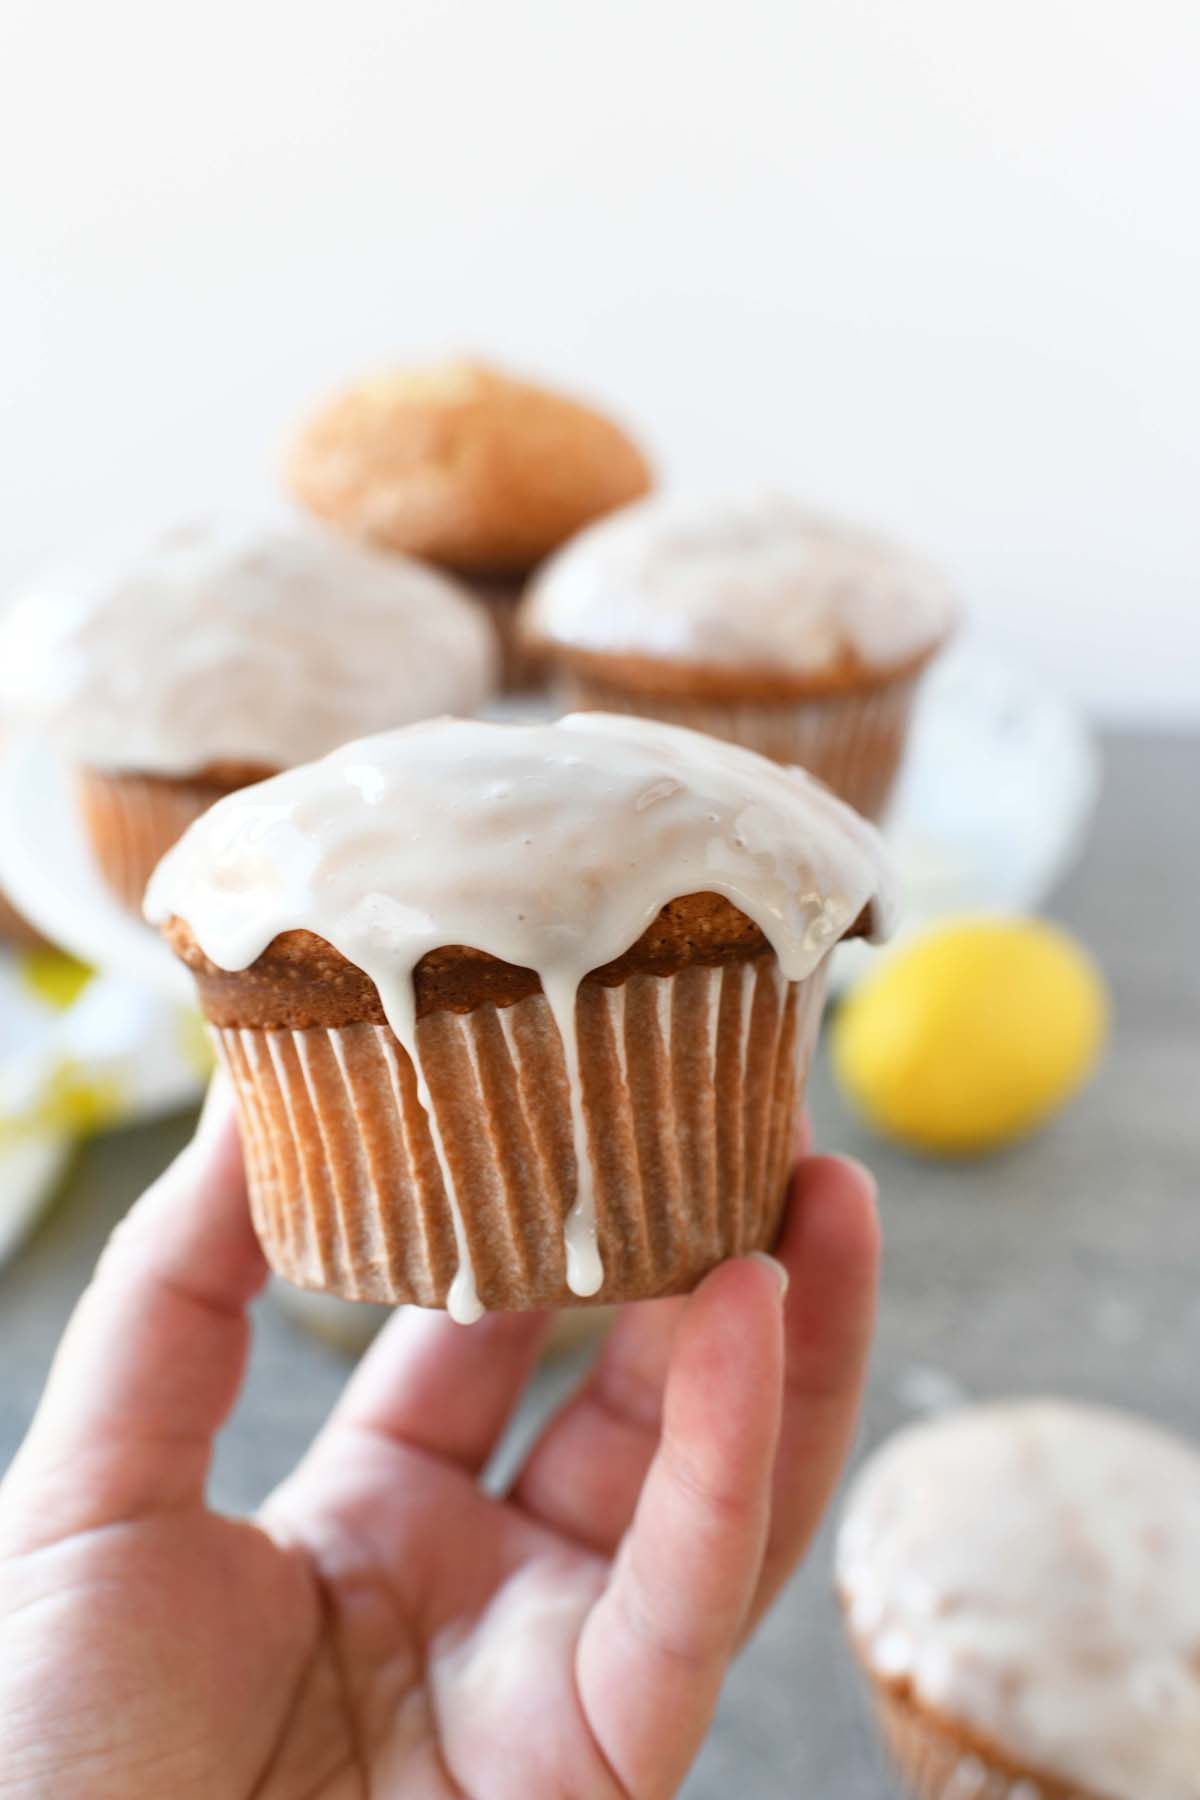 Iced Lemon Muffin in someone's hand. The icing is dripping down the wrapper.